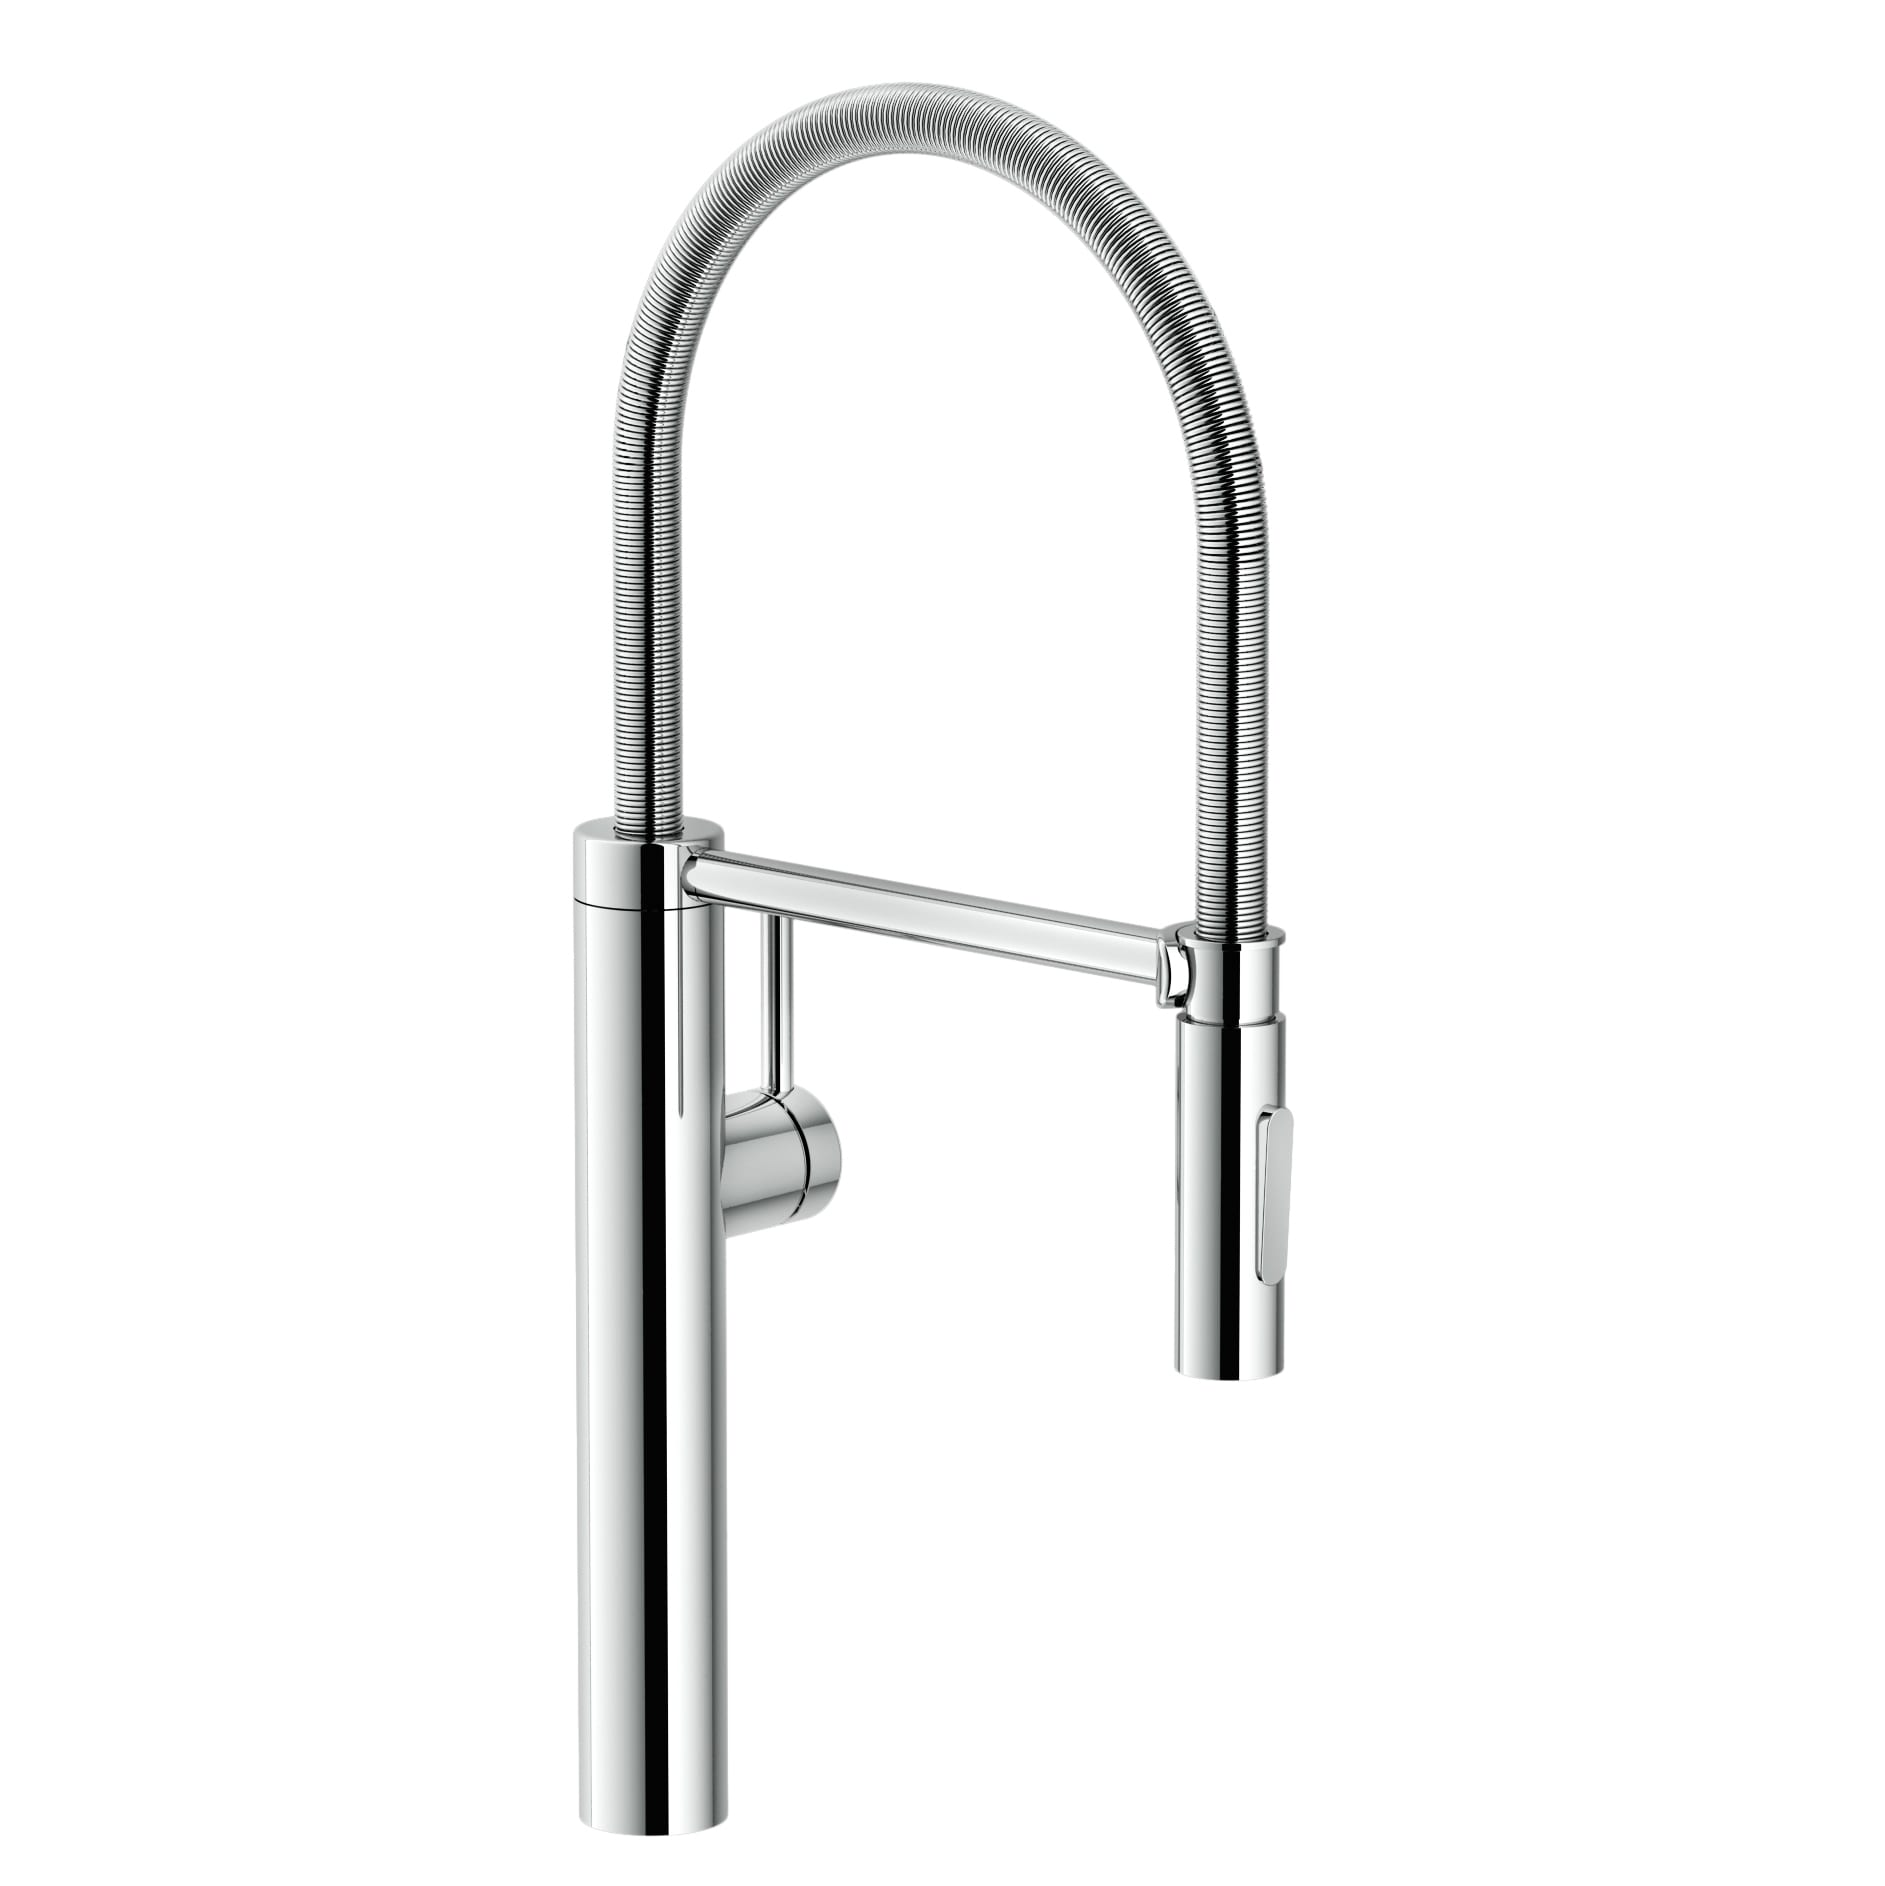 danze tap pull s franke symmons single u shower outdoor kohler faucet blanco head kitchen chrome on lendsmartco faucets glacier vella out sts pd